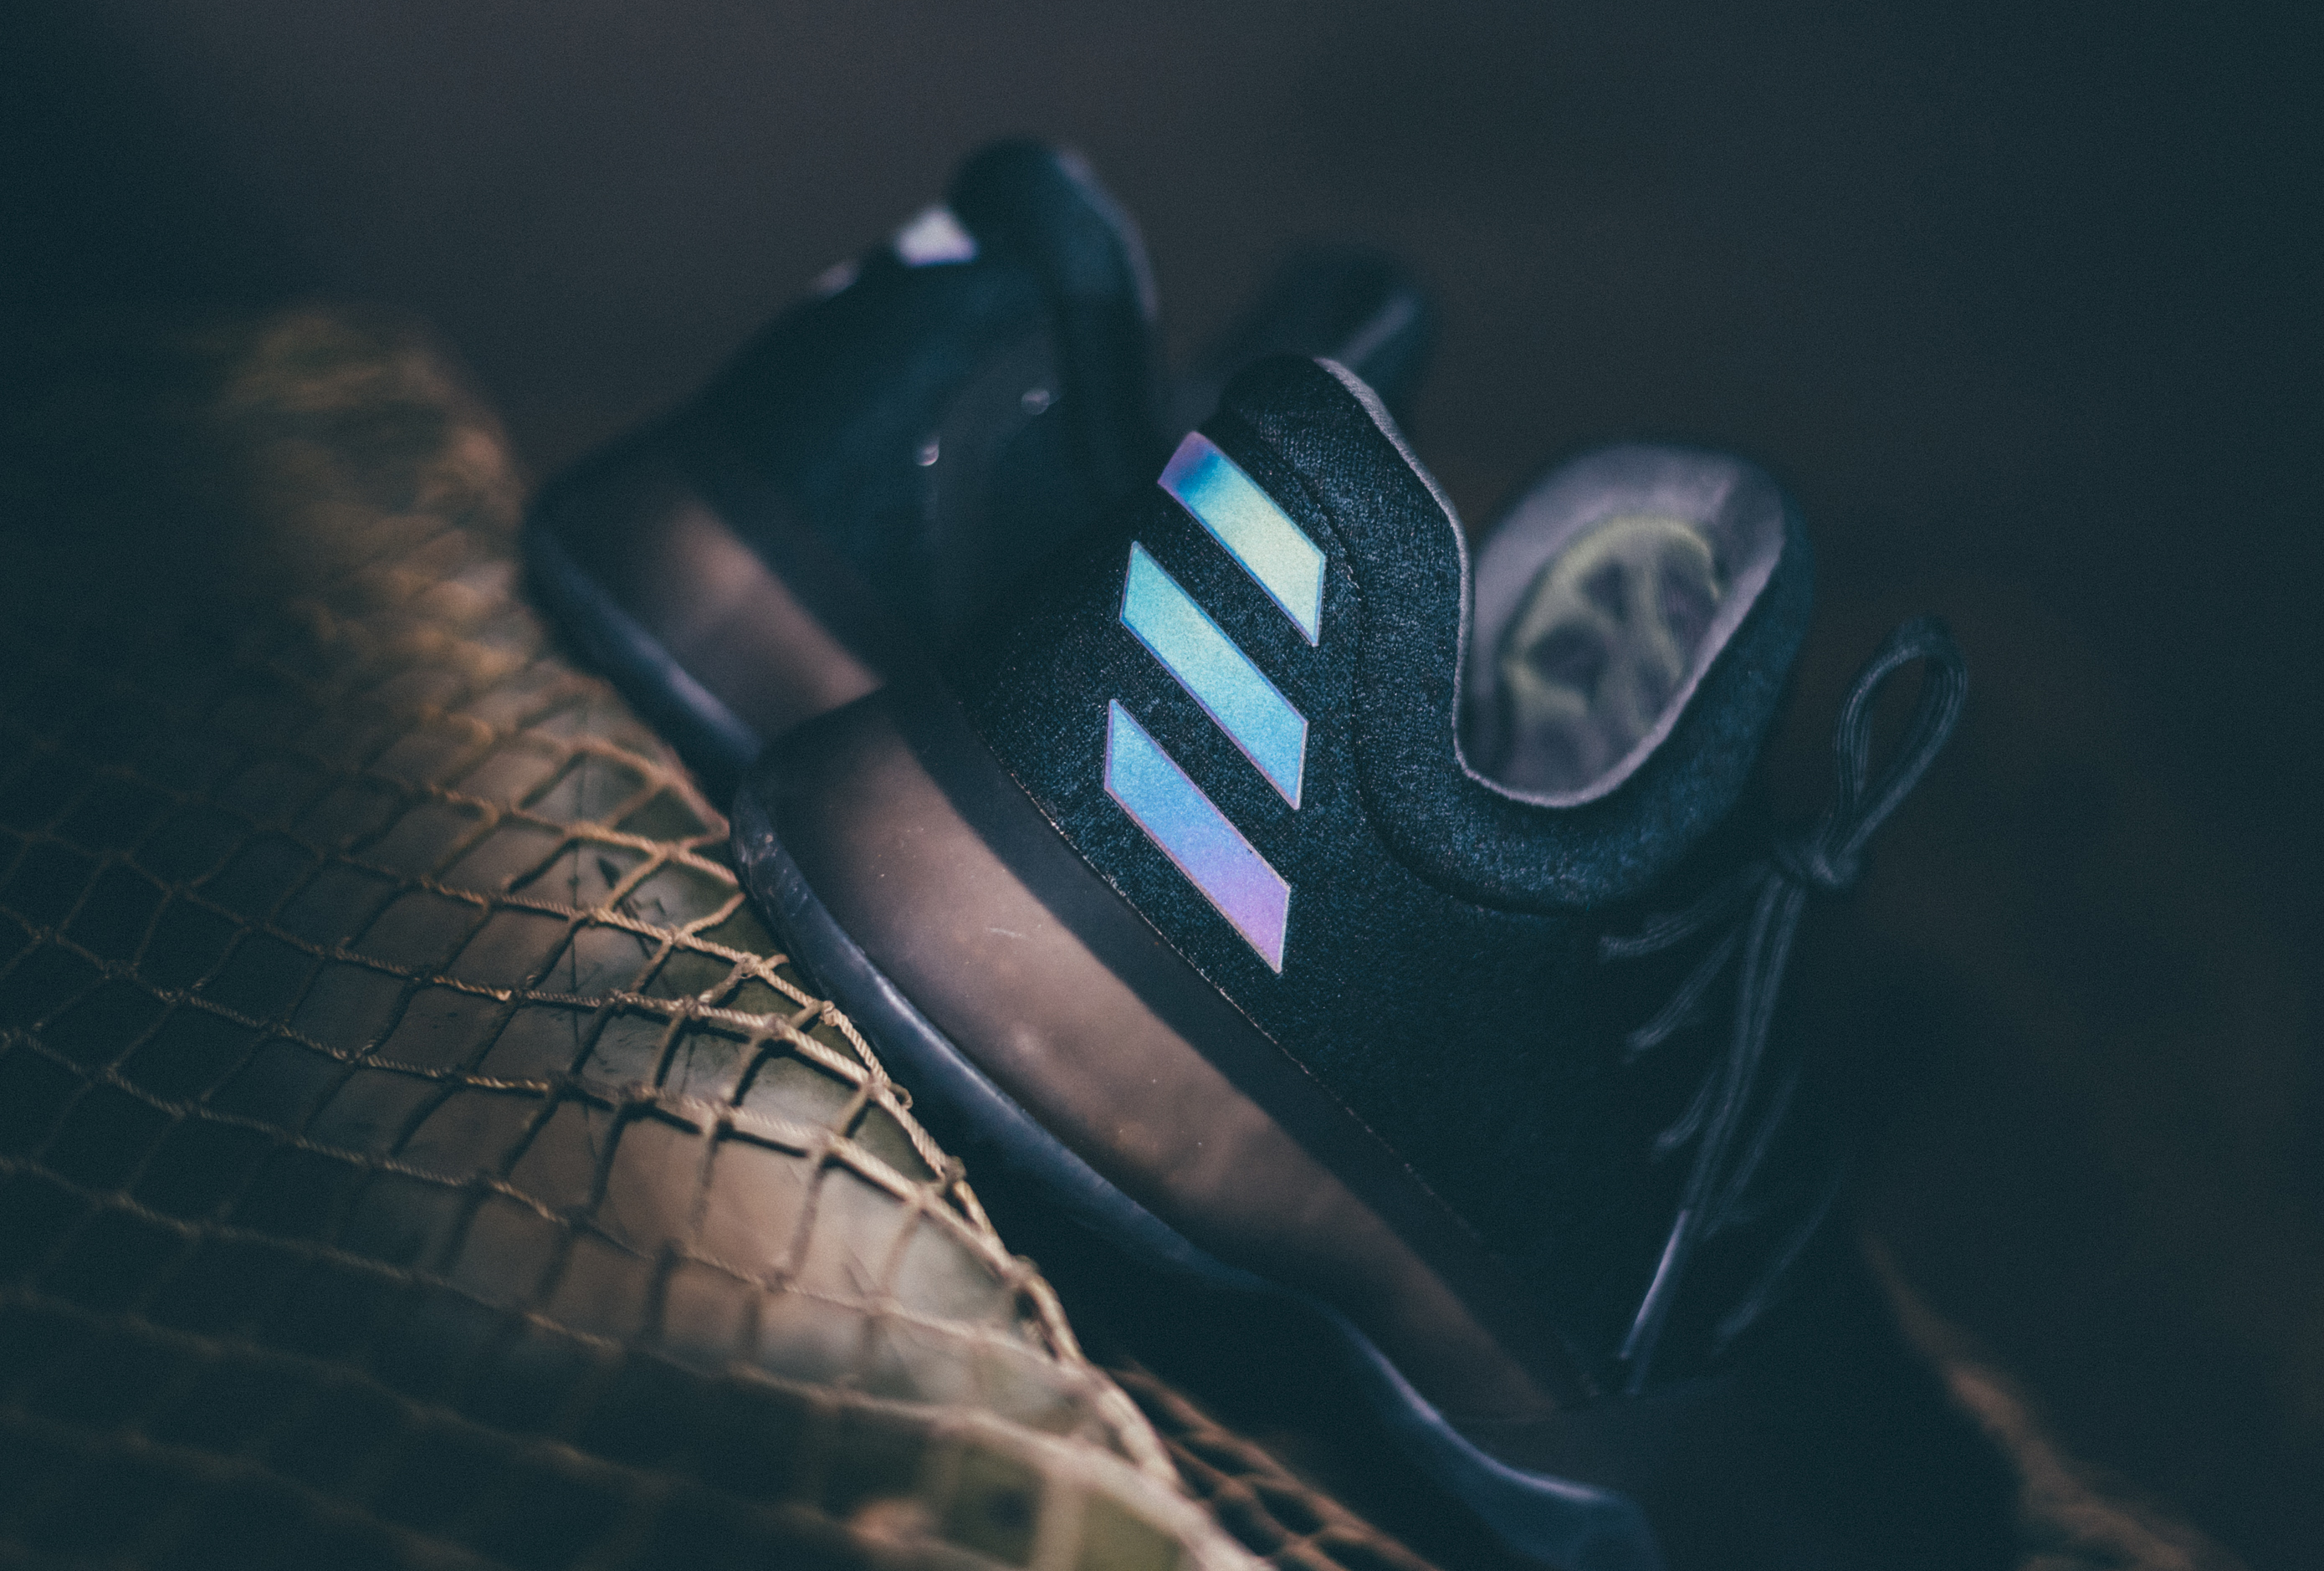 classic fit 325e5 ecd88 Image via Adidas Adidas Harden Vol 1 Triple Black Dark Ops Xeno 4